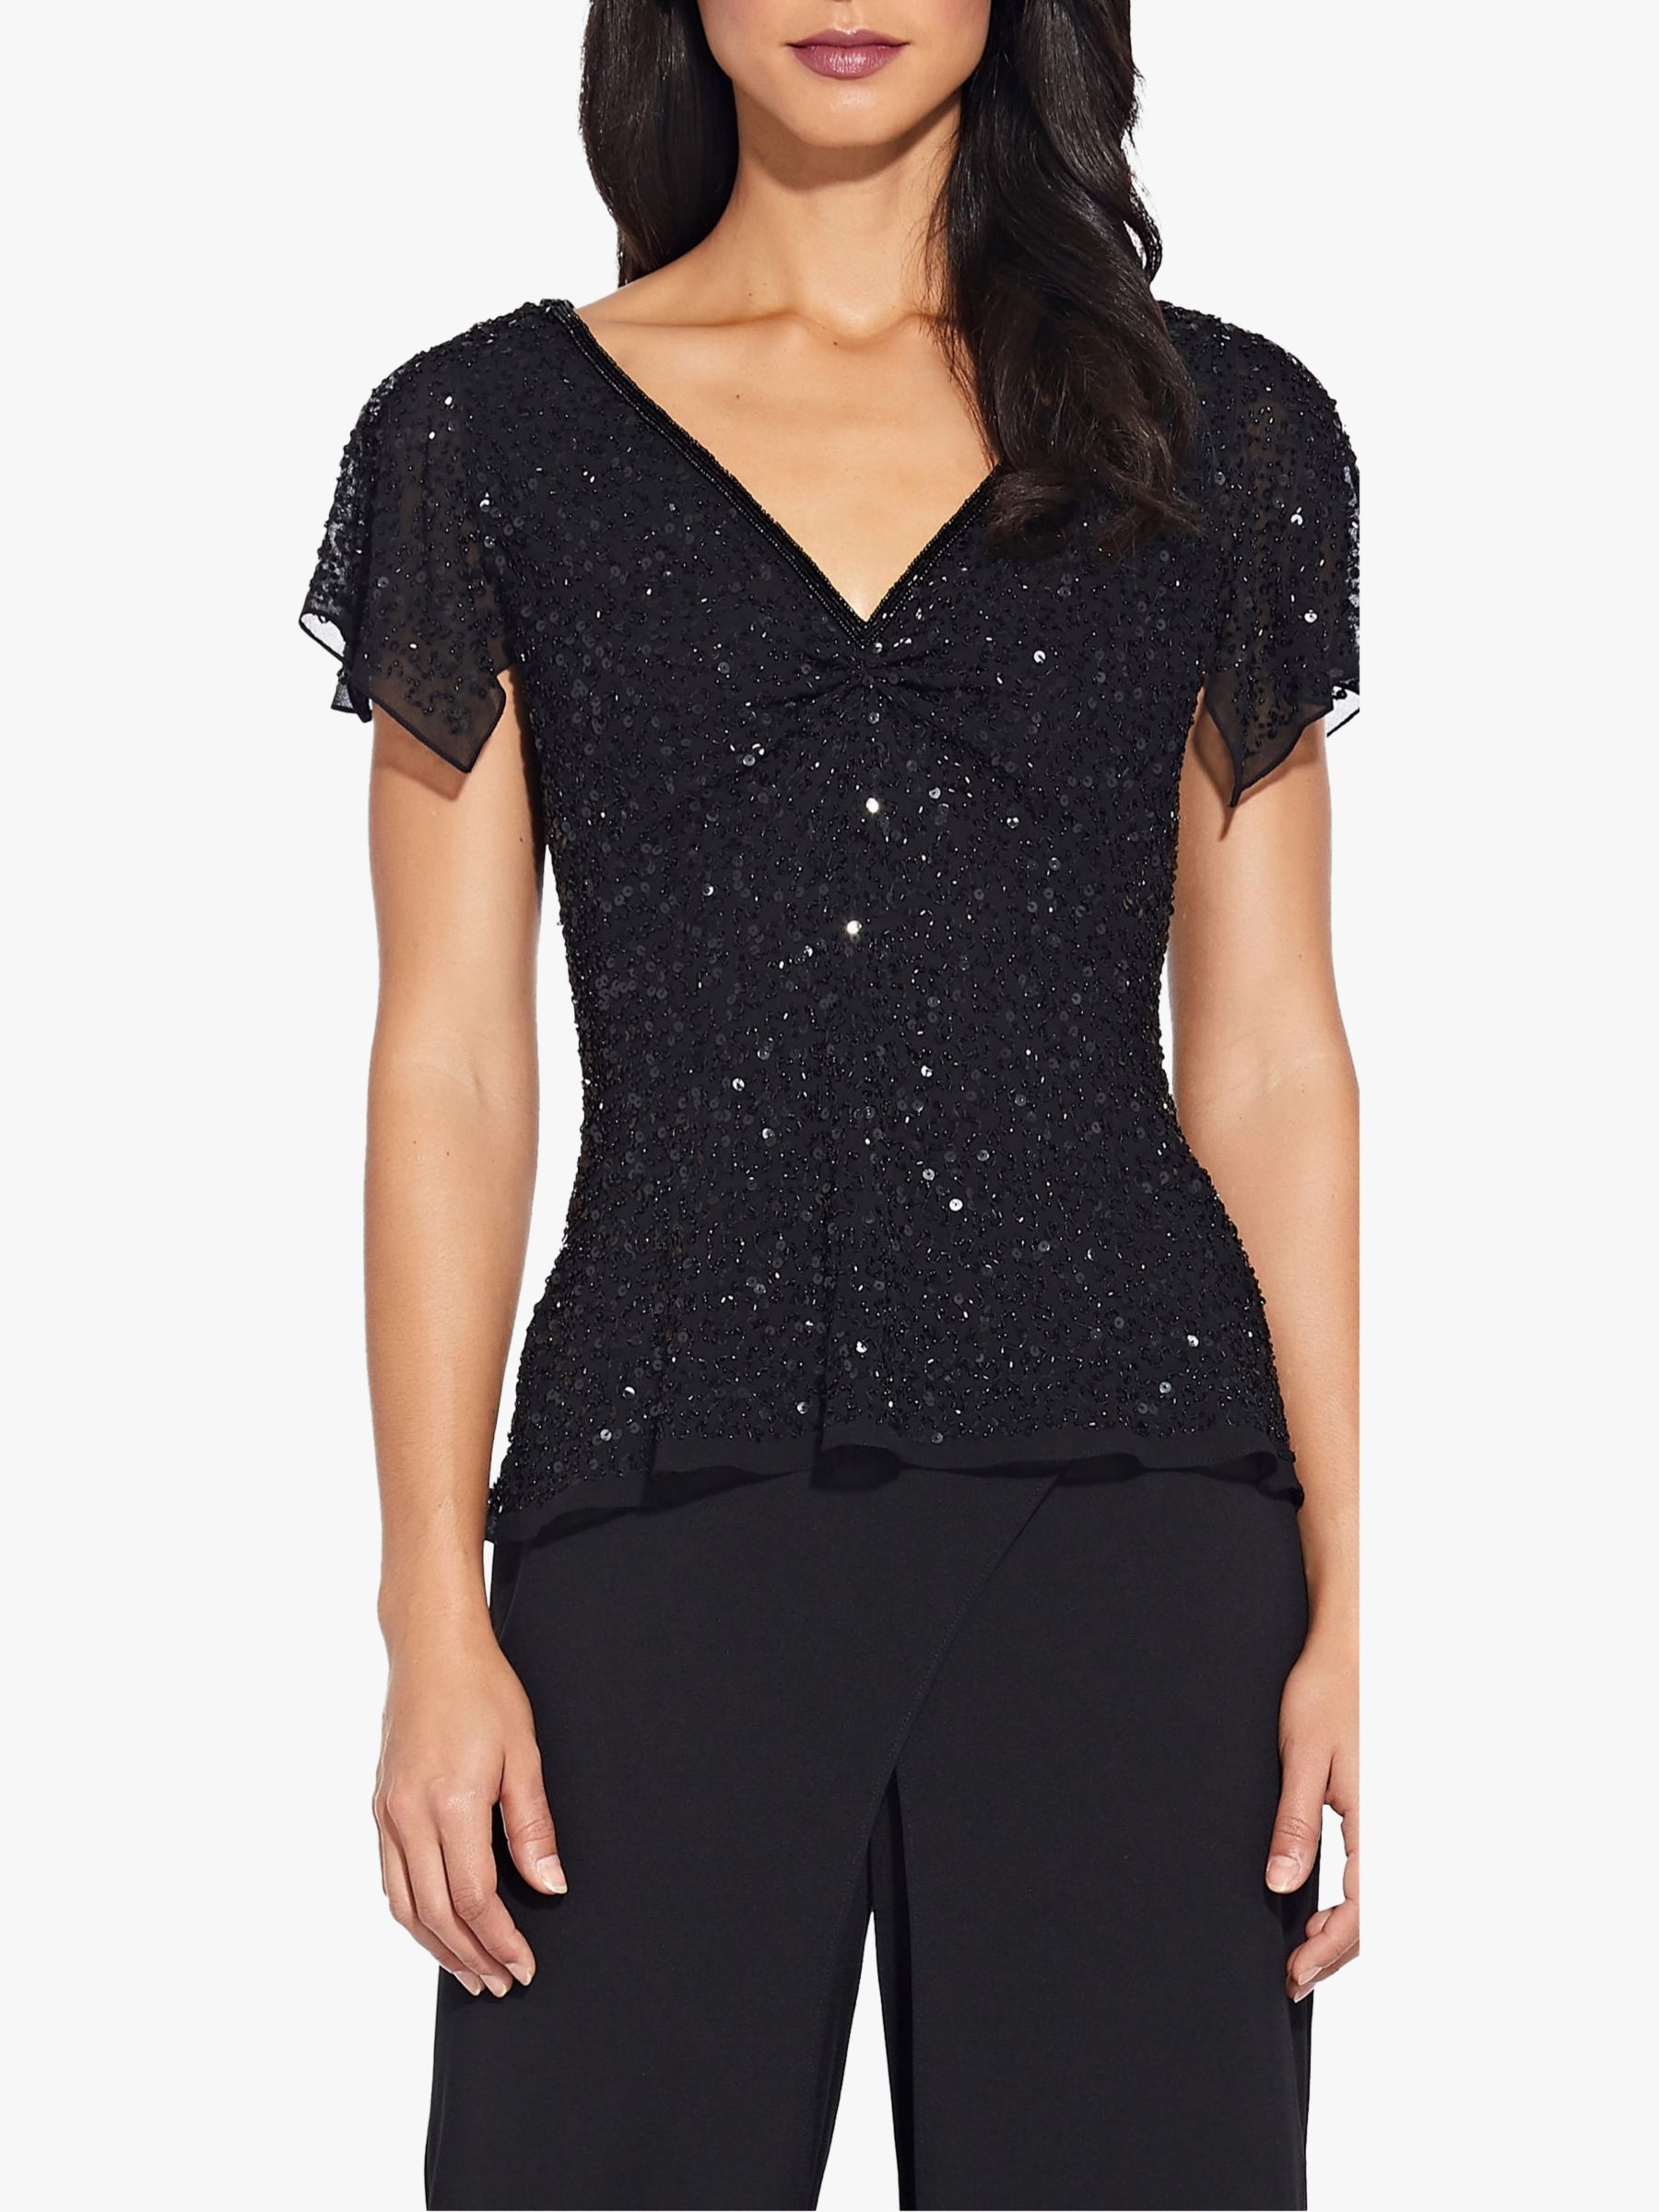 Adrianna Papell Adrianna Papell Dazzling V-Neck Top, Black